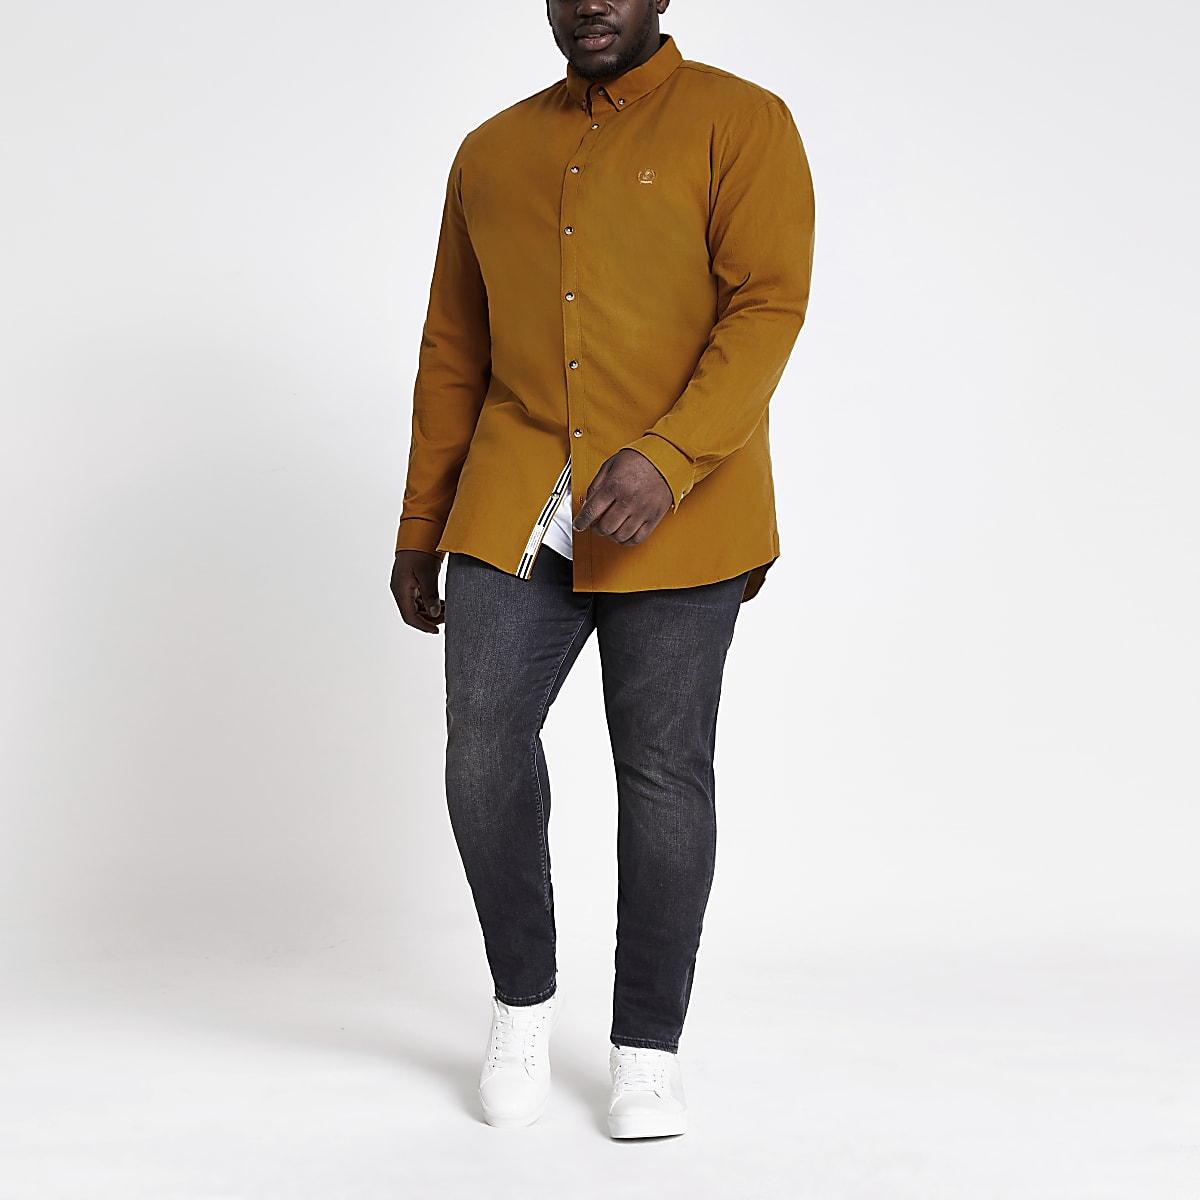 Big and Tall yellow long sleeve Oxford shirt